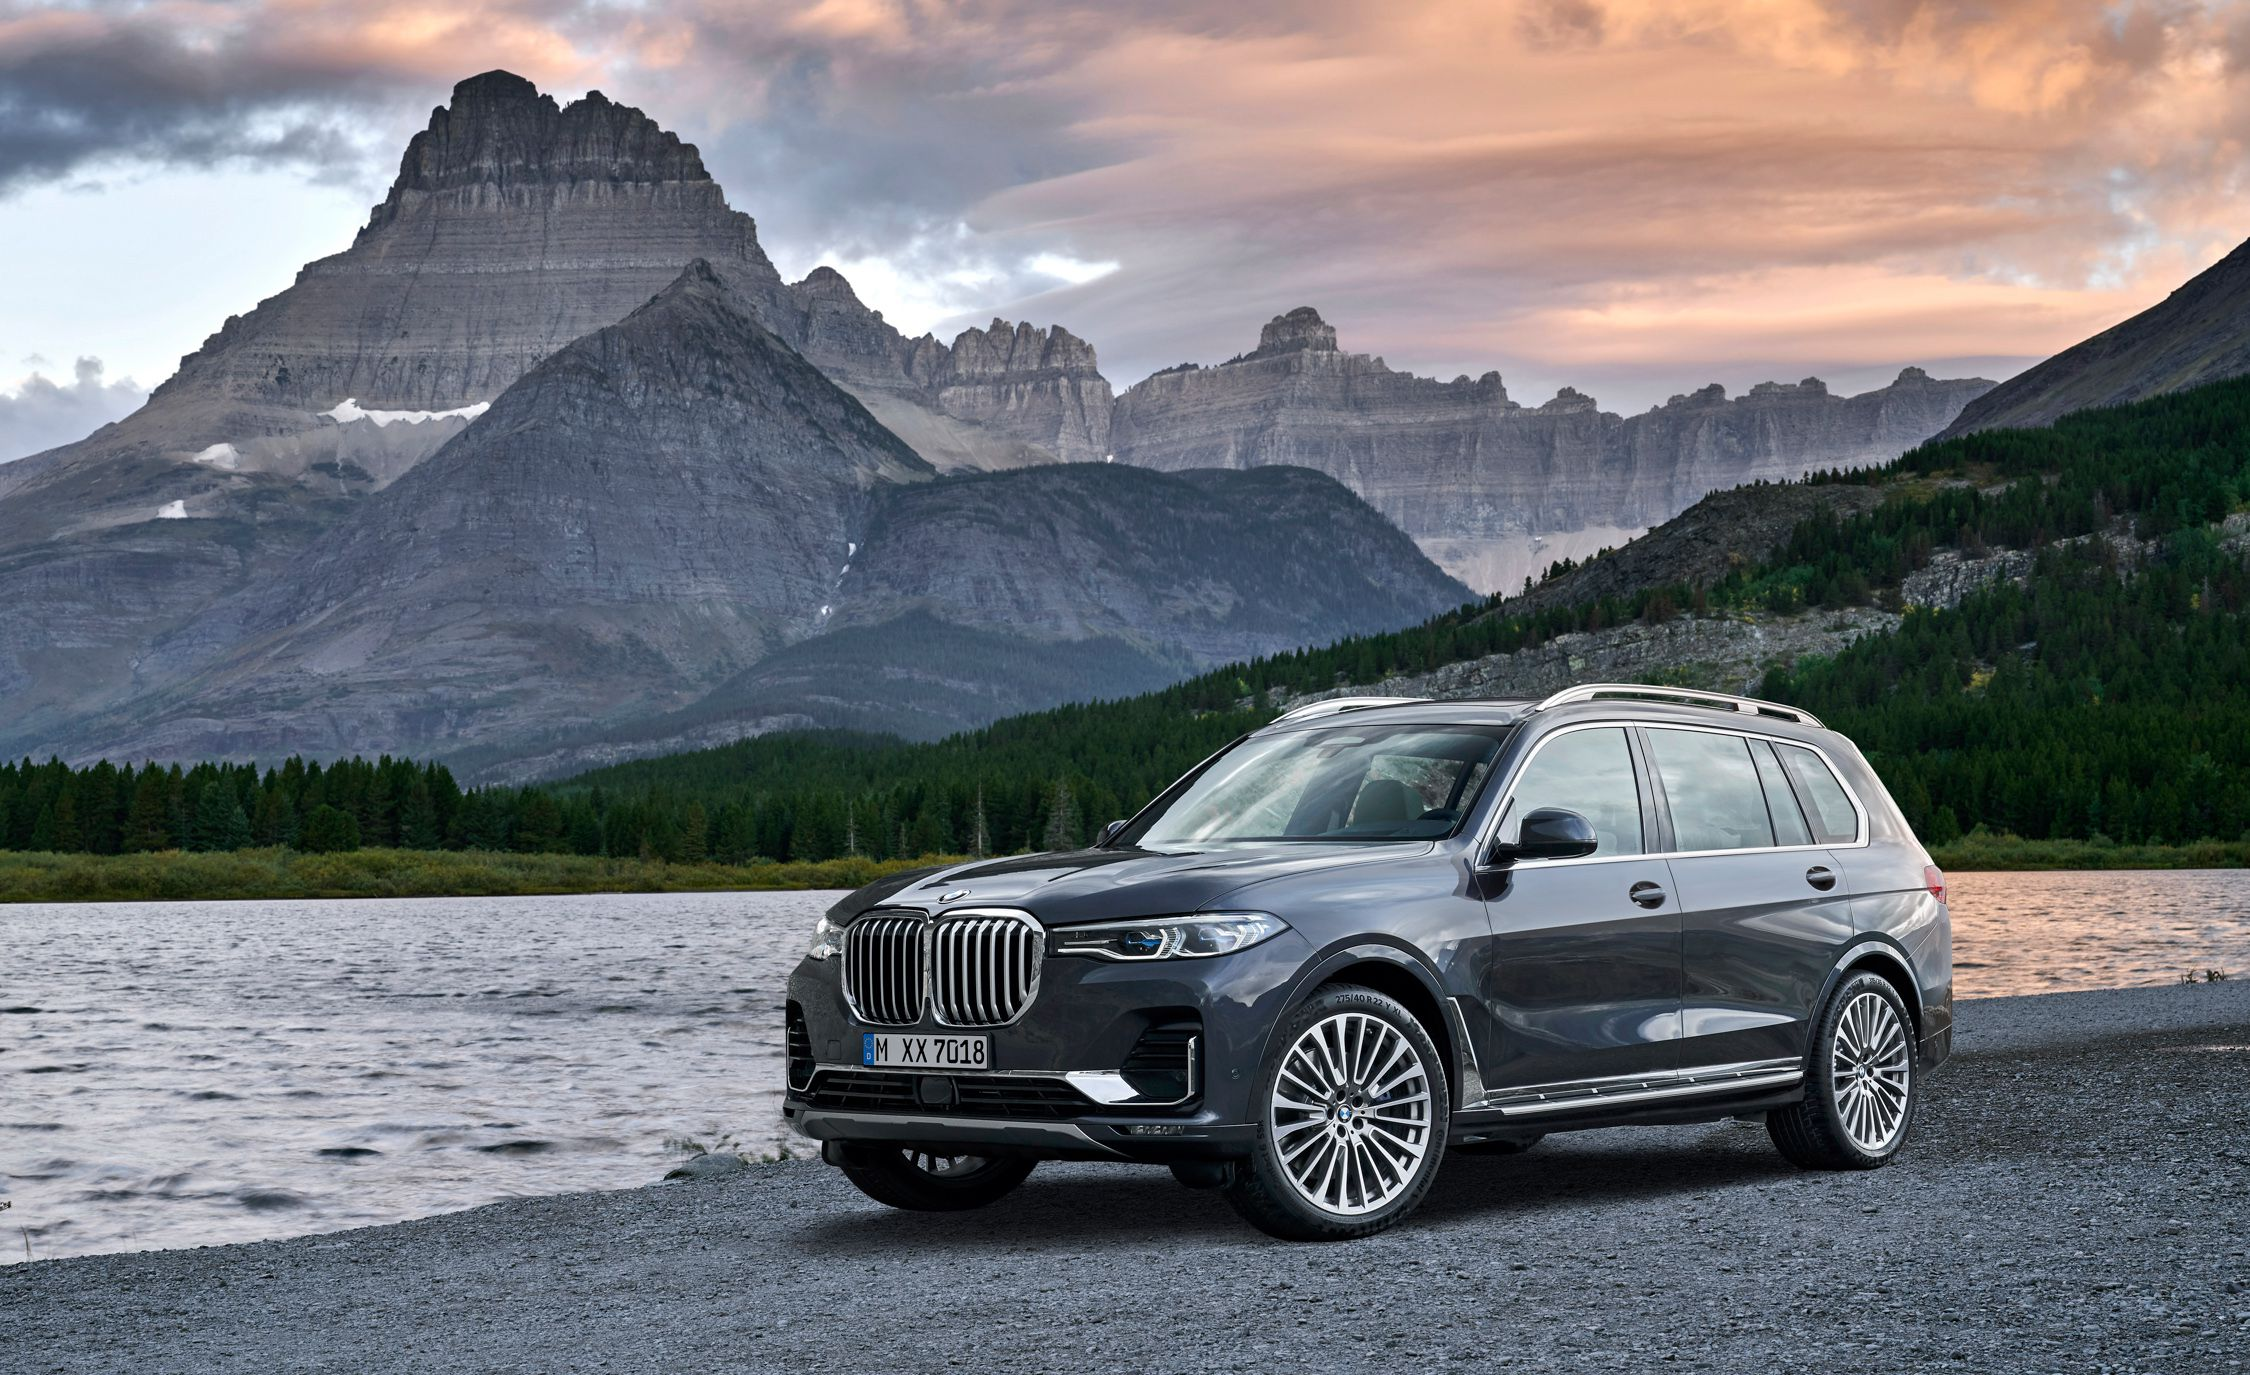 INDEX_CONTENT7_TITLE_NEW_2019_BMW_X7_XDRIVE40I